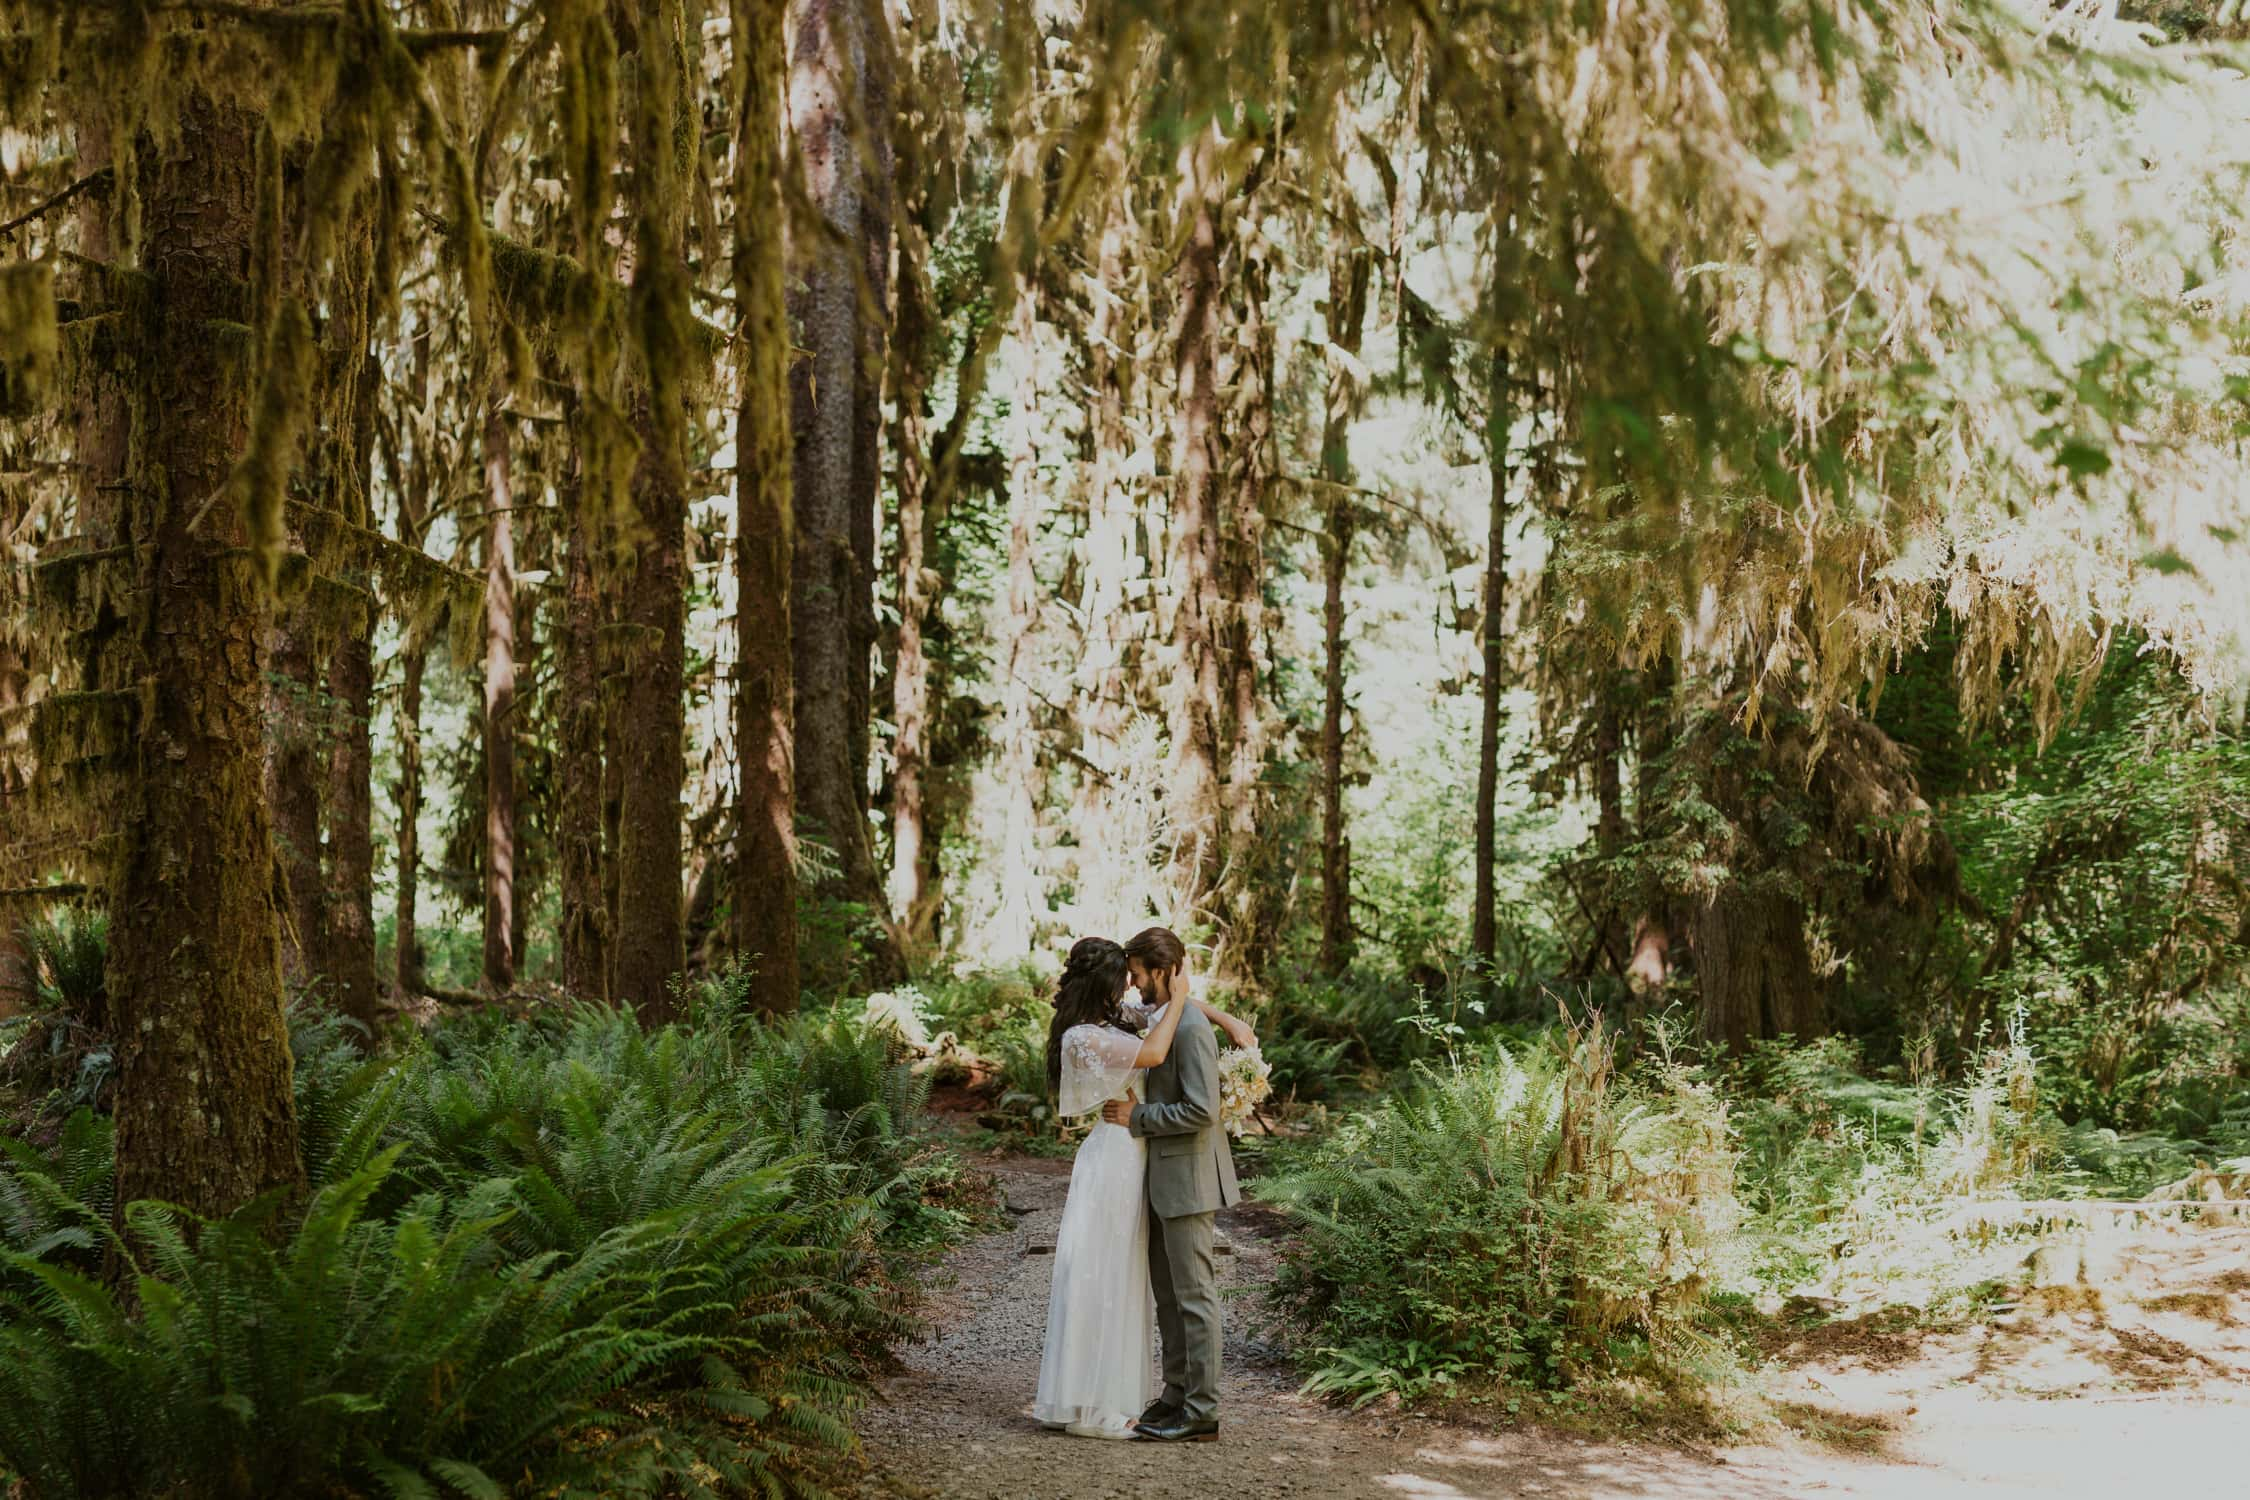 A couple eloping in Washington State at the Hoh Rainforest.